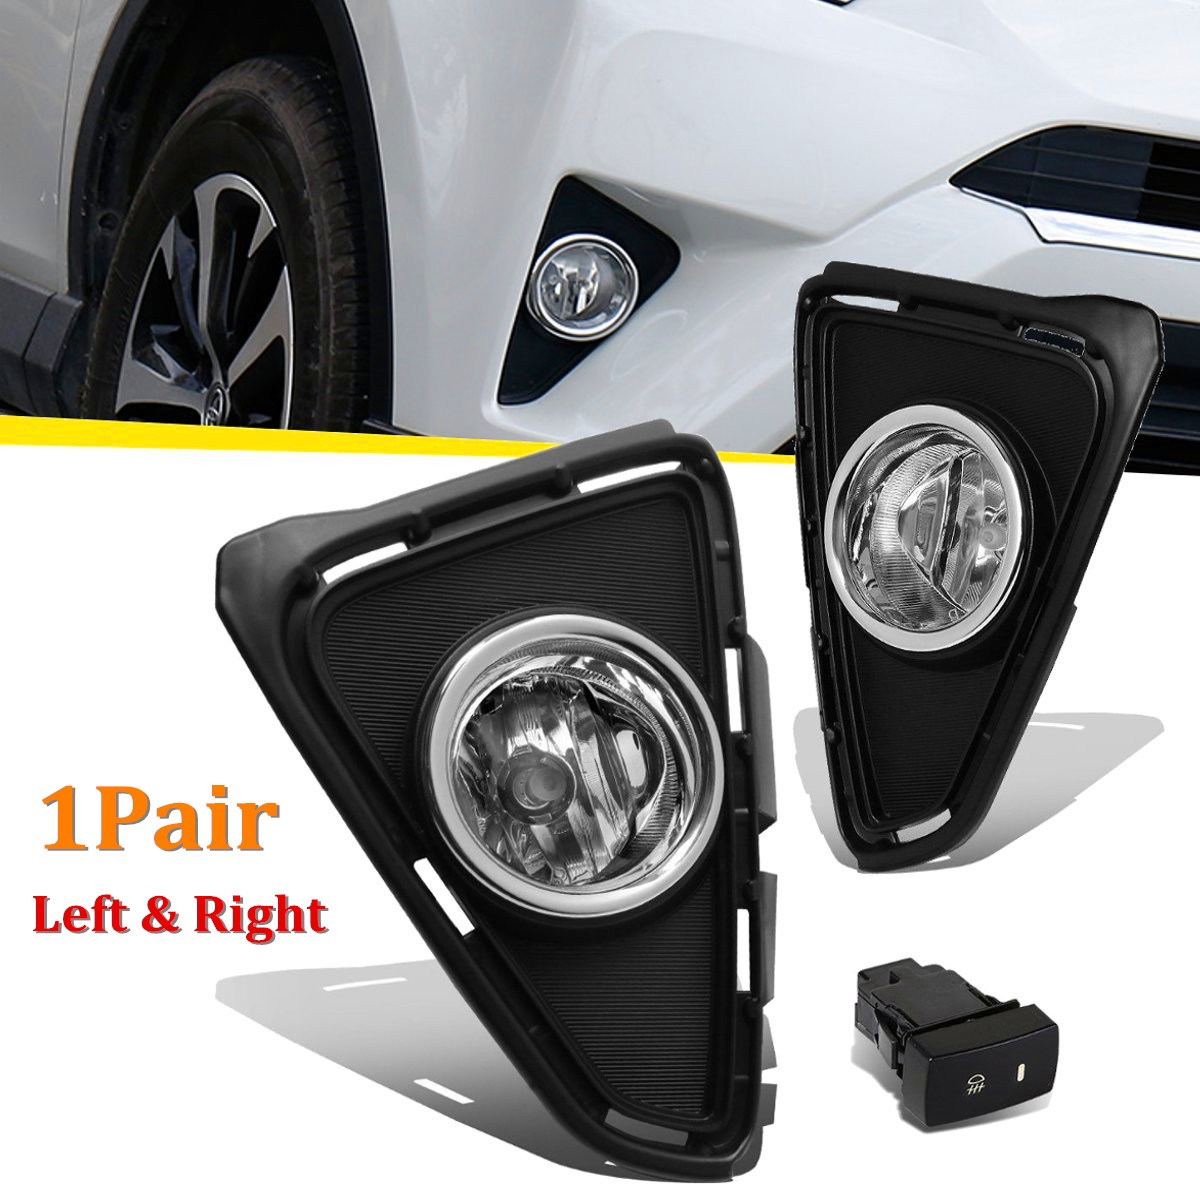 2pcs/pair LH/RH Front Bumper Clear Lens Fog Lights Driving Lamps Pair For Toyota Rav4 2016-2017 1set front chrome housing clear lens driving bumper fog light lamp grille cover switch line kit for 2007 2009 toyota camry